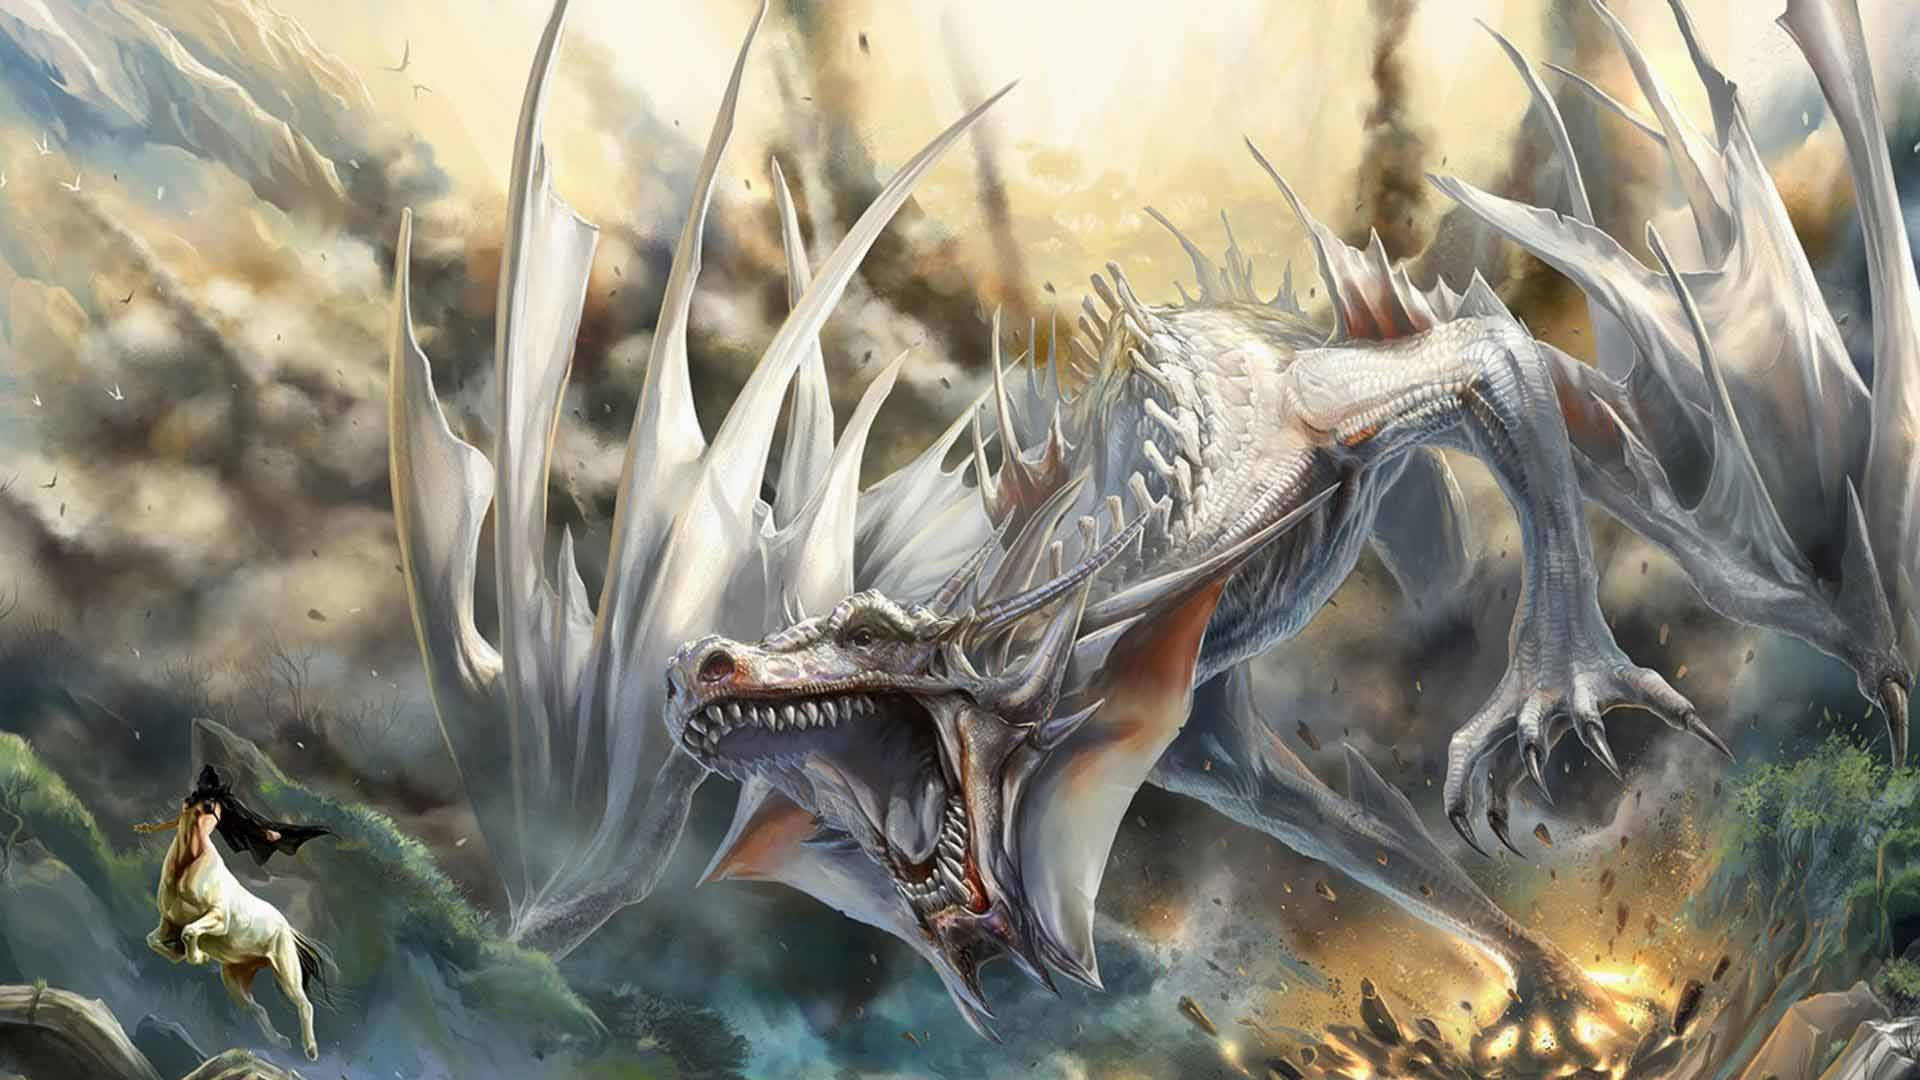 dragon wallpaper hd 1080p download free amazing backgrounds for